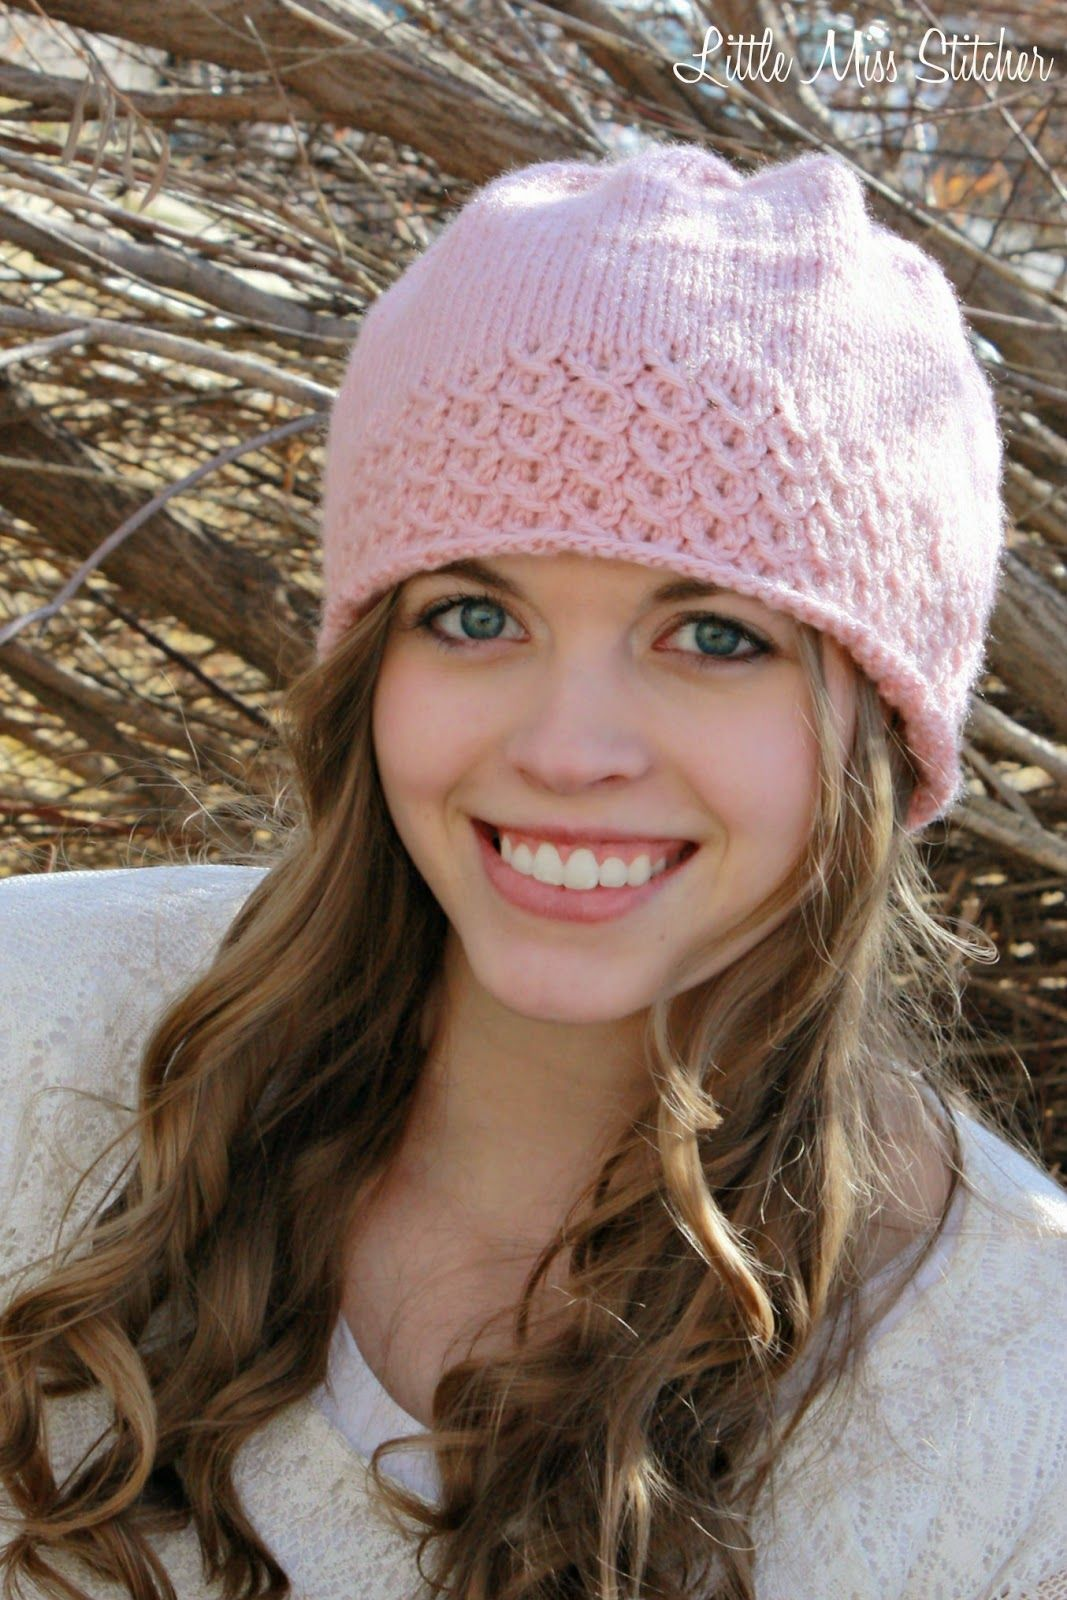 Little miss stitcher serendipity knit hat free pattern knit little miss stitcher serendipity knit hat free pattern bankloansurffo Gallery